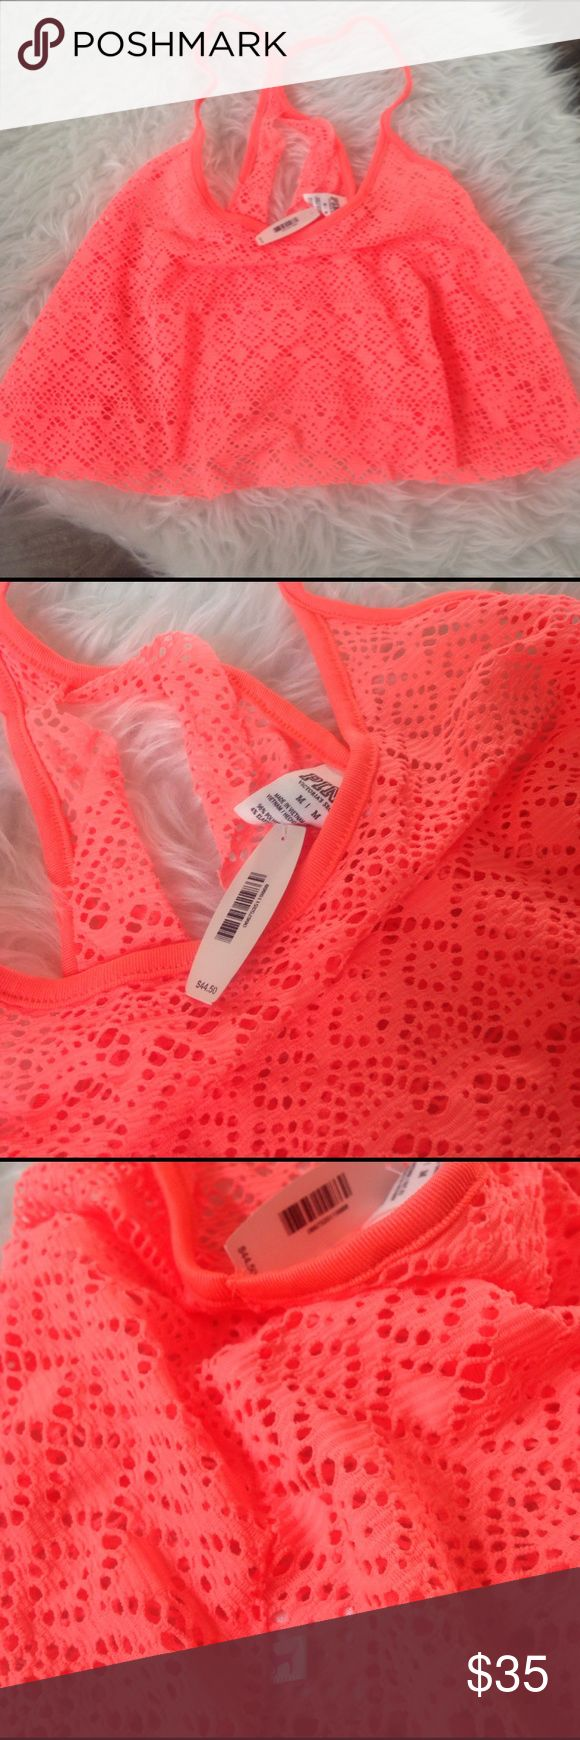 NWT PINK Victoria's Secret bikini swim 👙 cover up NWT PINK Victoria's Secret bathing suit 👙 cover up, super sexy! Available in fuchsia or orange. This listing is for color: orange, 96% polyamide & 4% elastane. Size: XS, Retail: $45, ships same day of purchase. PINK Victoria's Secret Swim Coverups